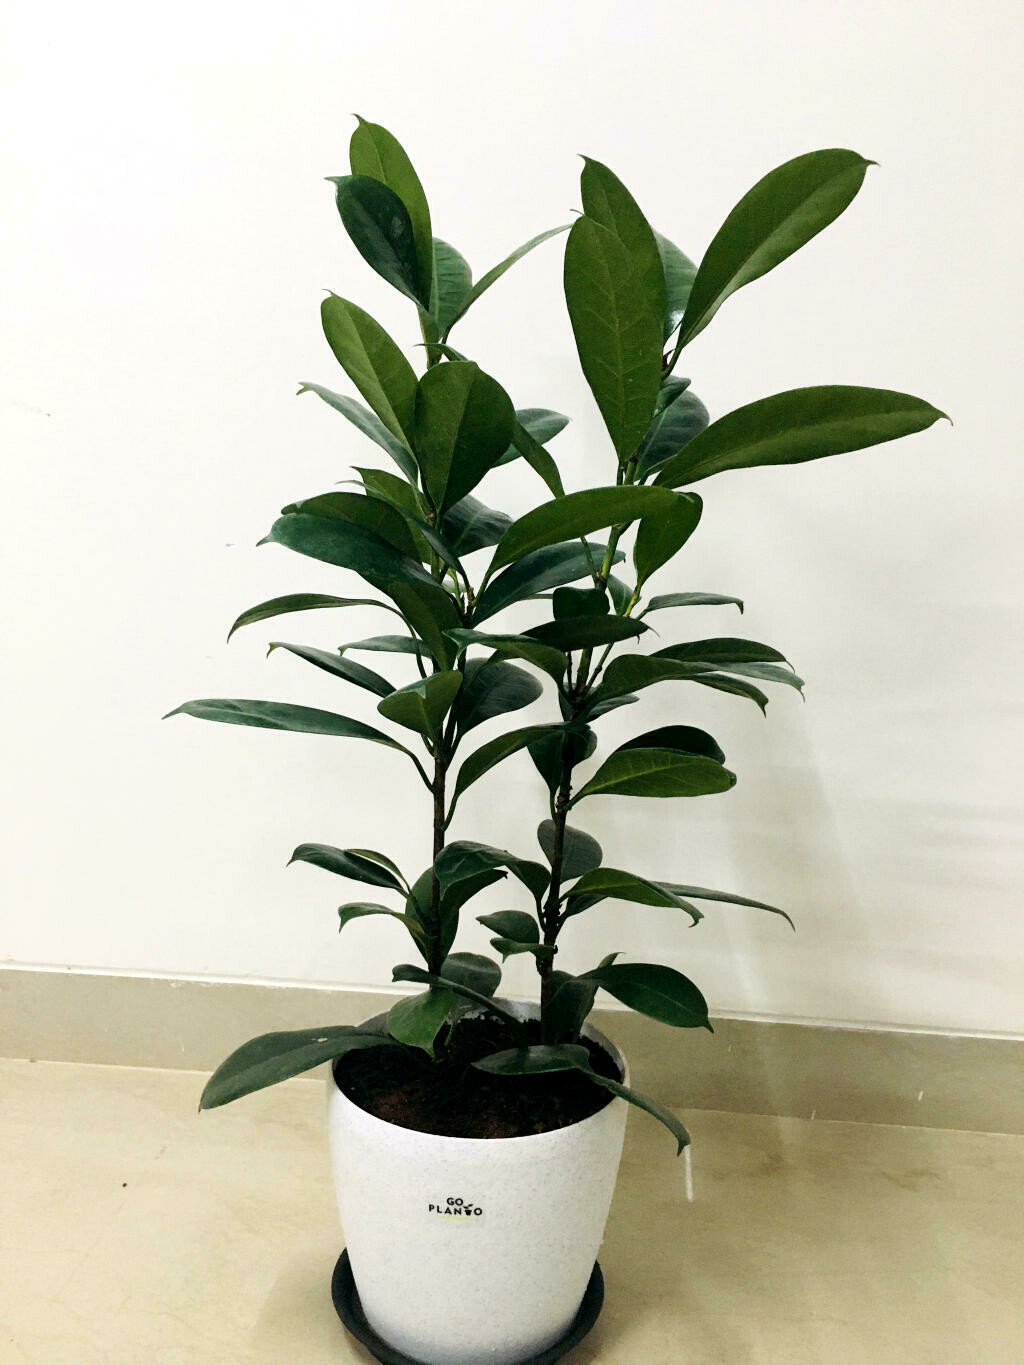 Ficus Green Rubber Plant  in Deca Round Pot with tray